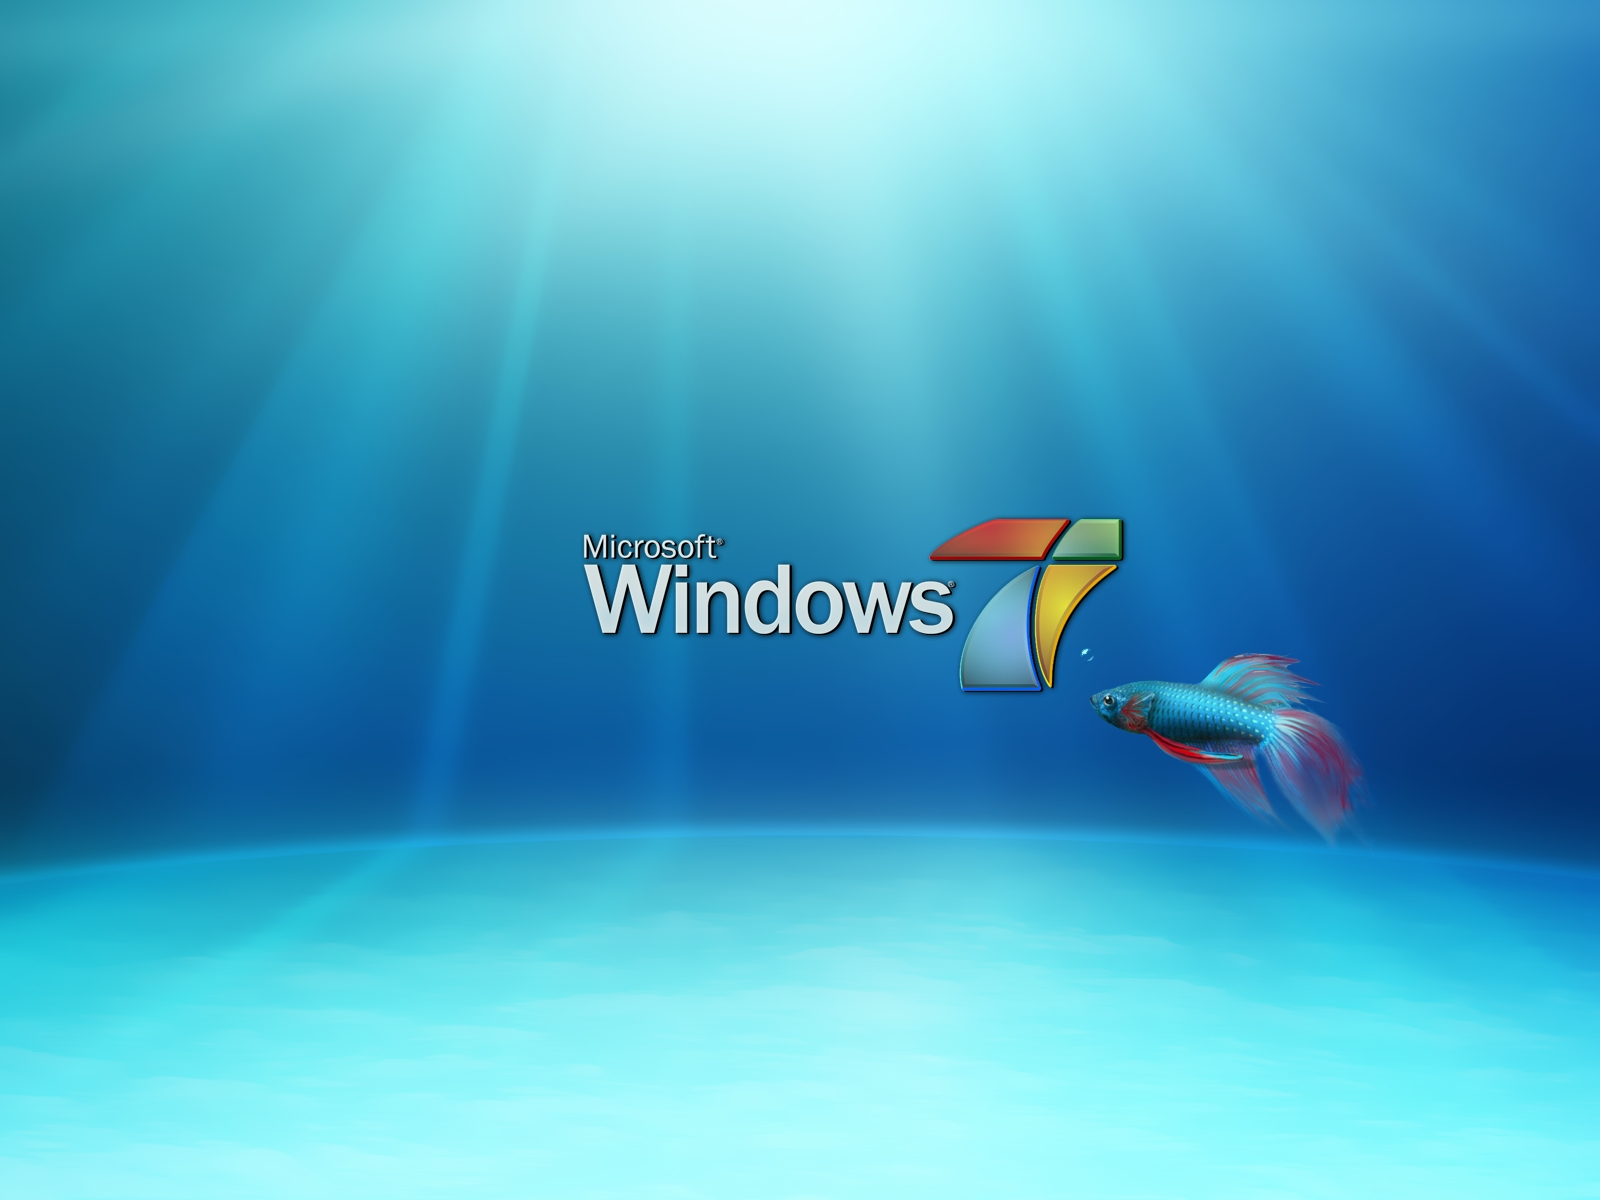 http://3.bp.blogspot.com/-OJIIFcdeUTw/T_dYlTS1K6I/AAAAAAAAAIw/QXKVefGOrLo/s1600/Windows7-new-wallpaper-fish.jpg